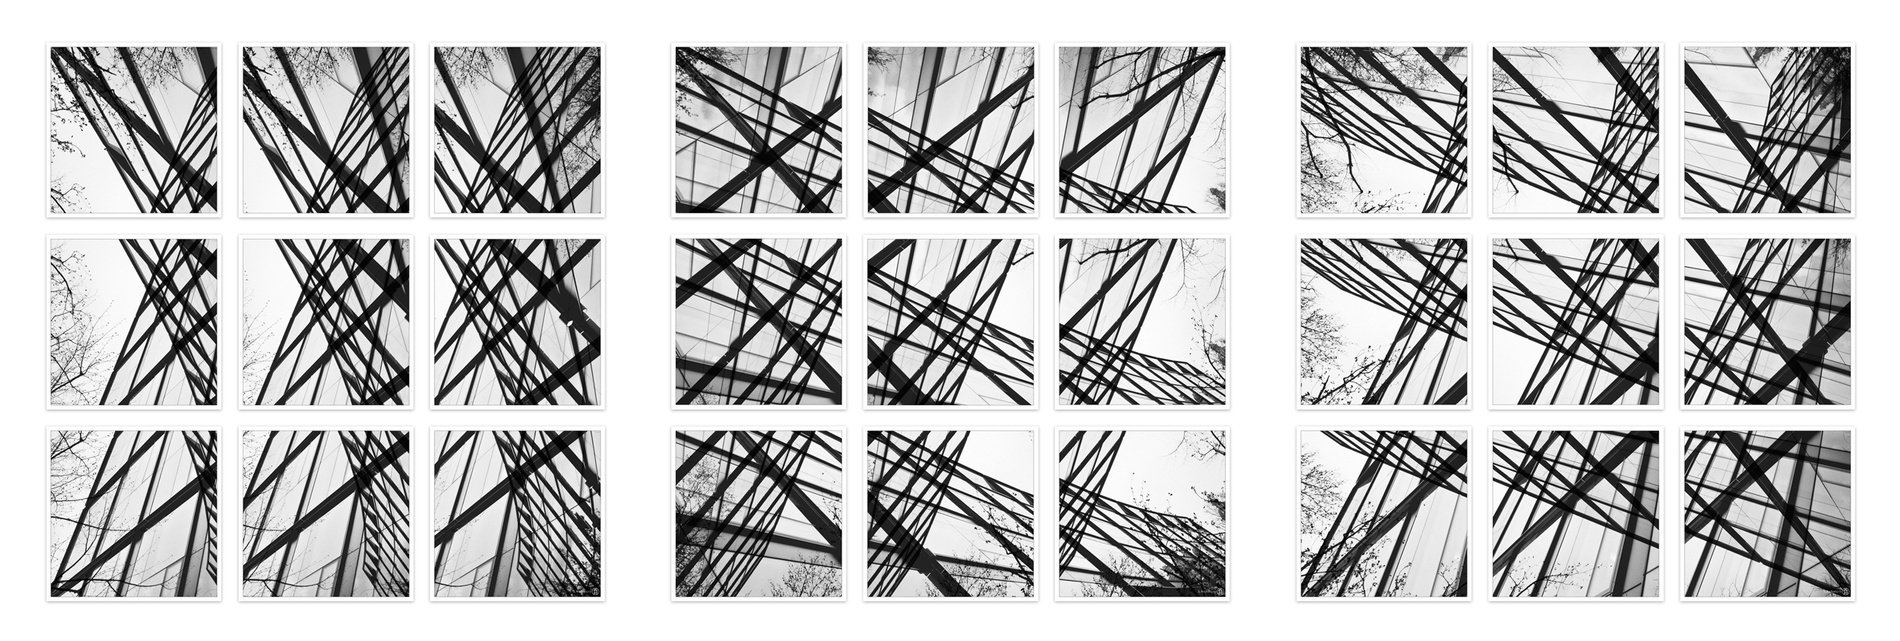 Structure Variations / Private commission for Derwent London